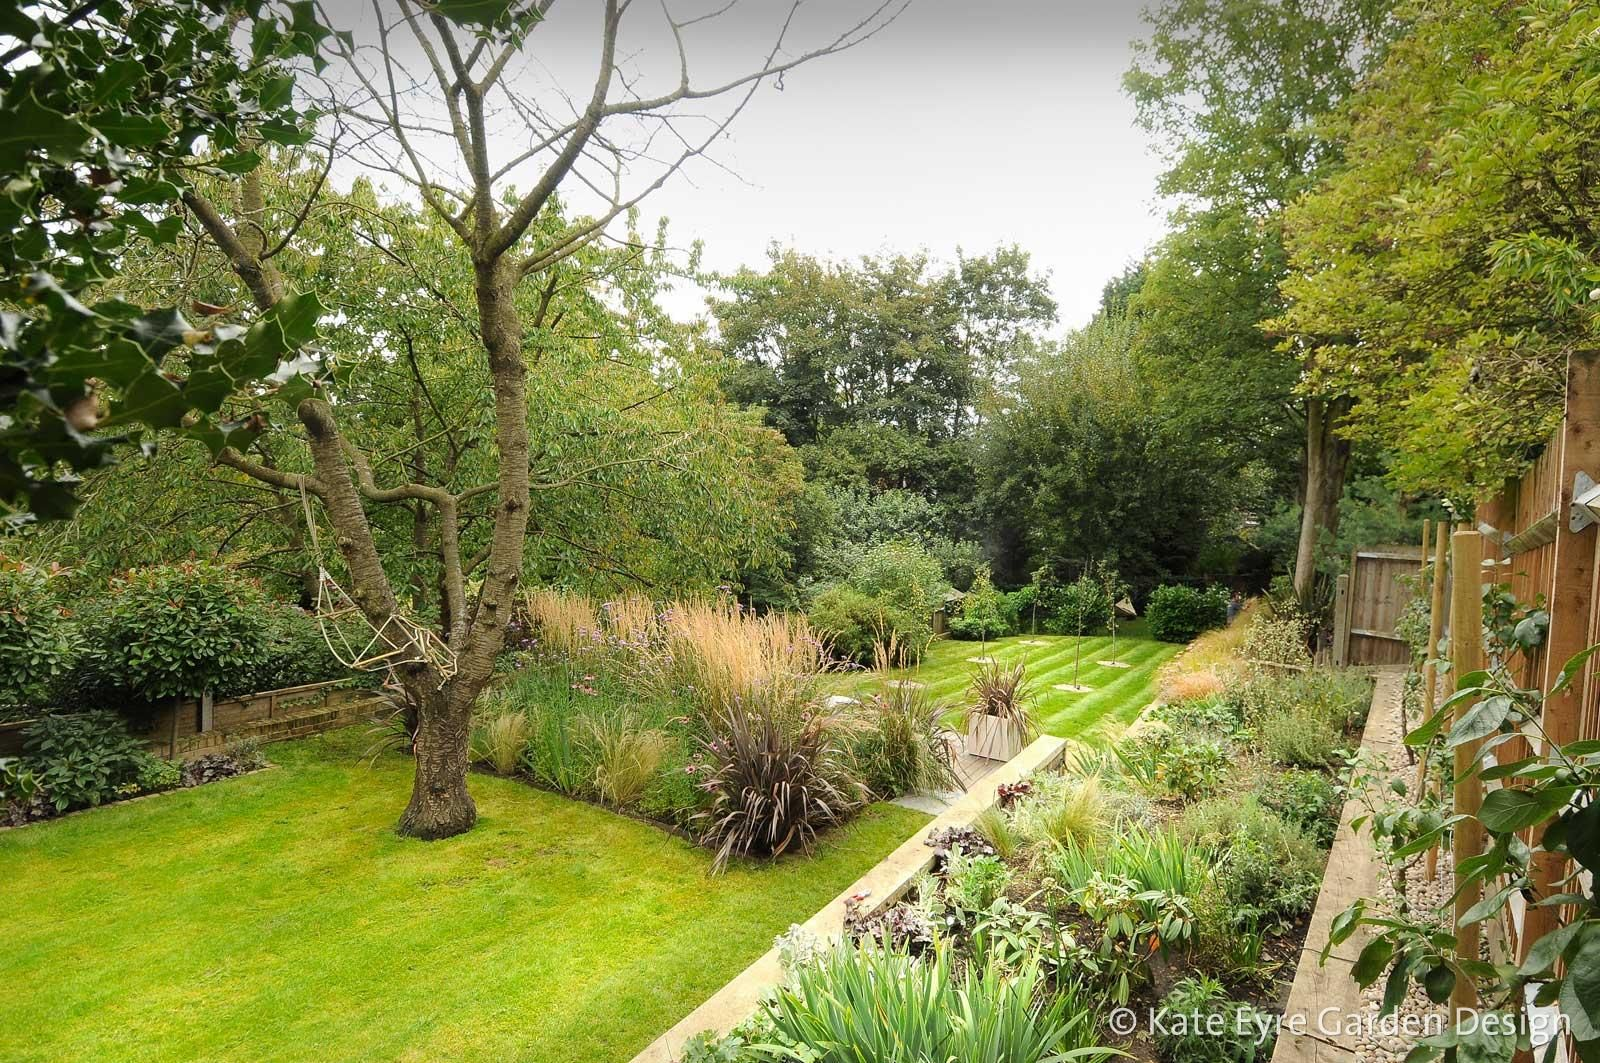 Garden Landscape Design Pics Lovely Garden Design In Crystal Palace South East London In 2020 Garden Design Mediterranean Landscape Design Tiered Landscape